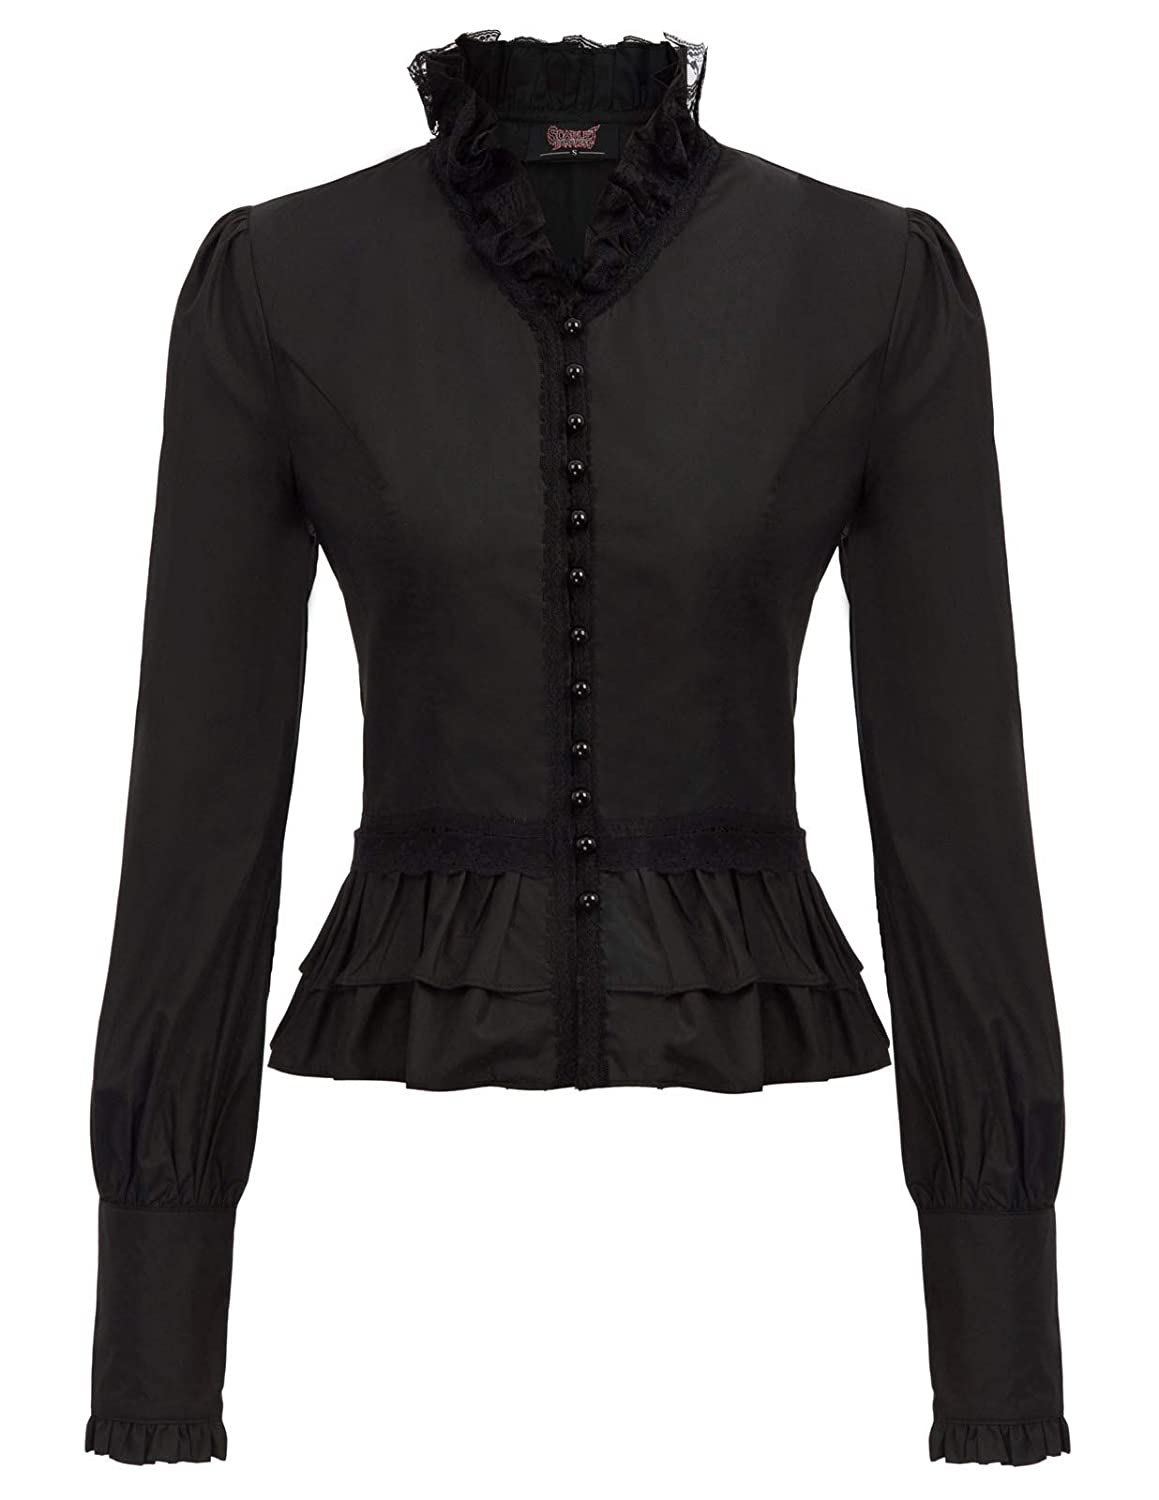 SCARLET DARKNESS Women Gothic Victorian Shirt Tops Long Sleeve Corset Blouse